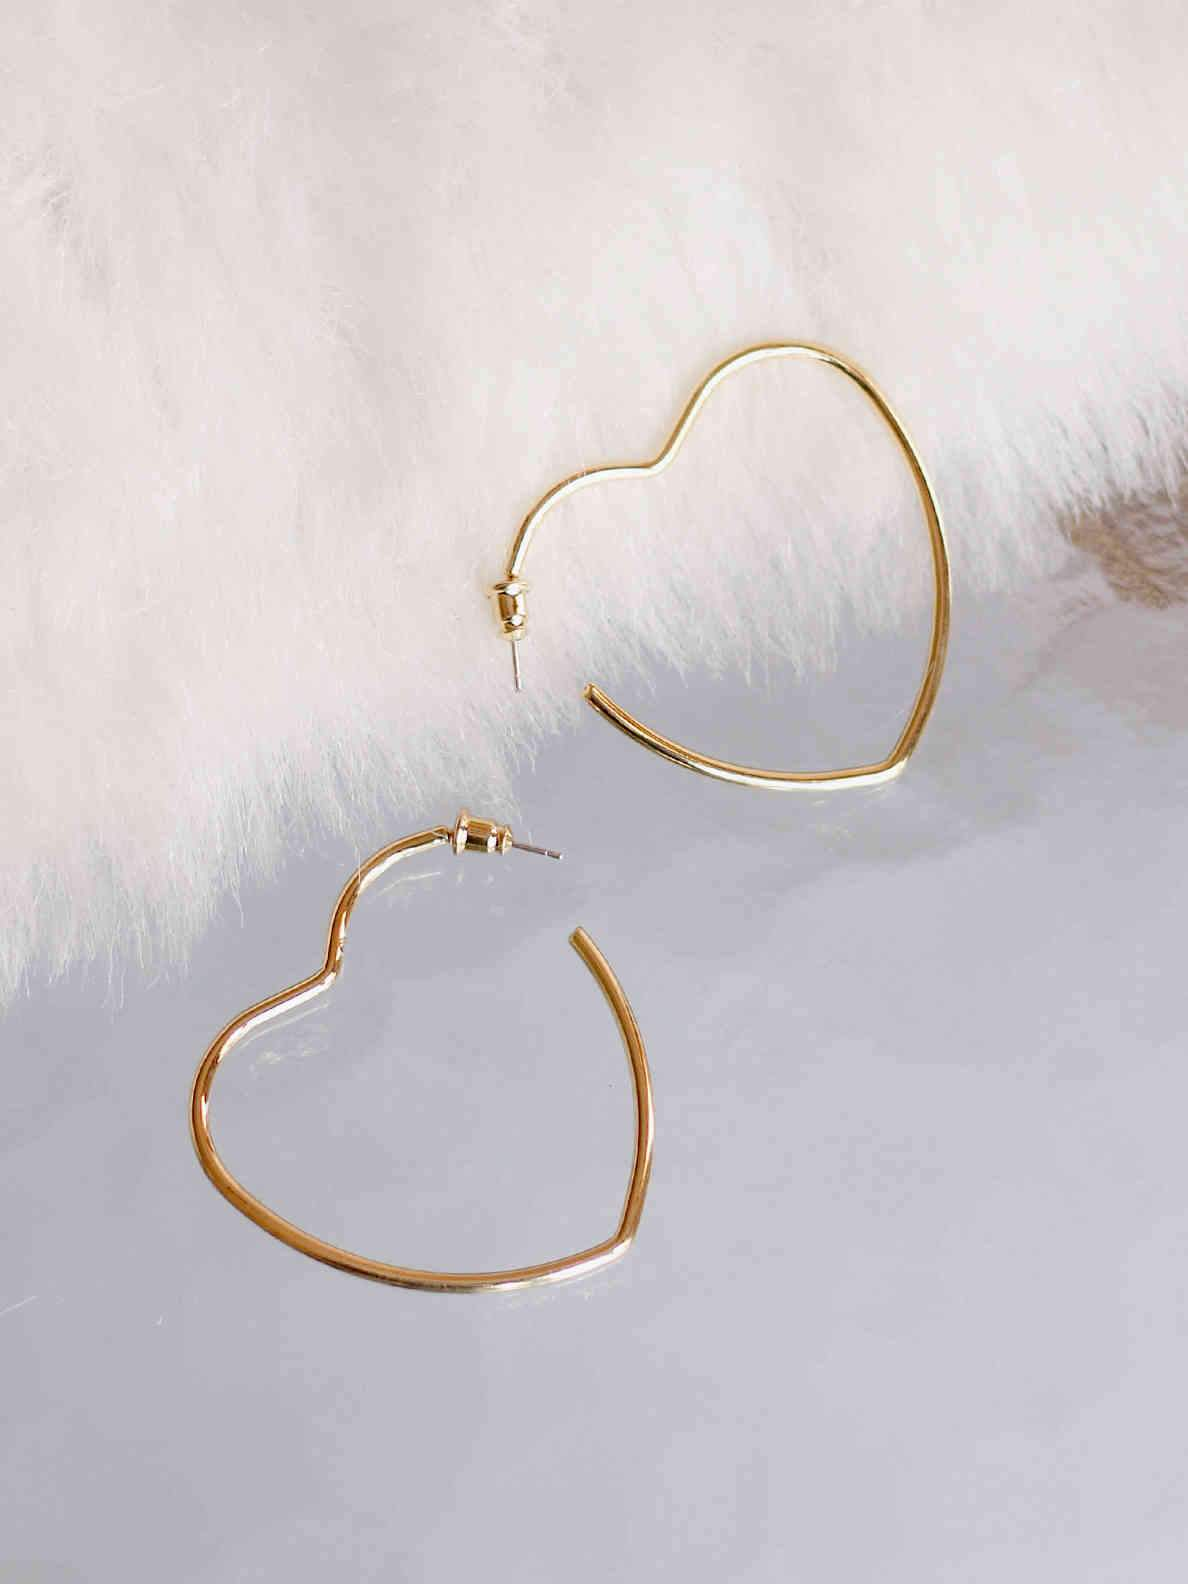 Bellofox Cut Heart Hoops Earrings BE3001